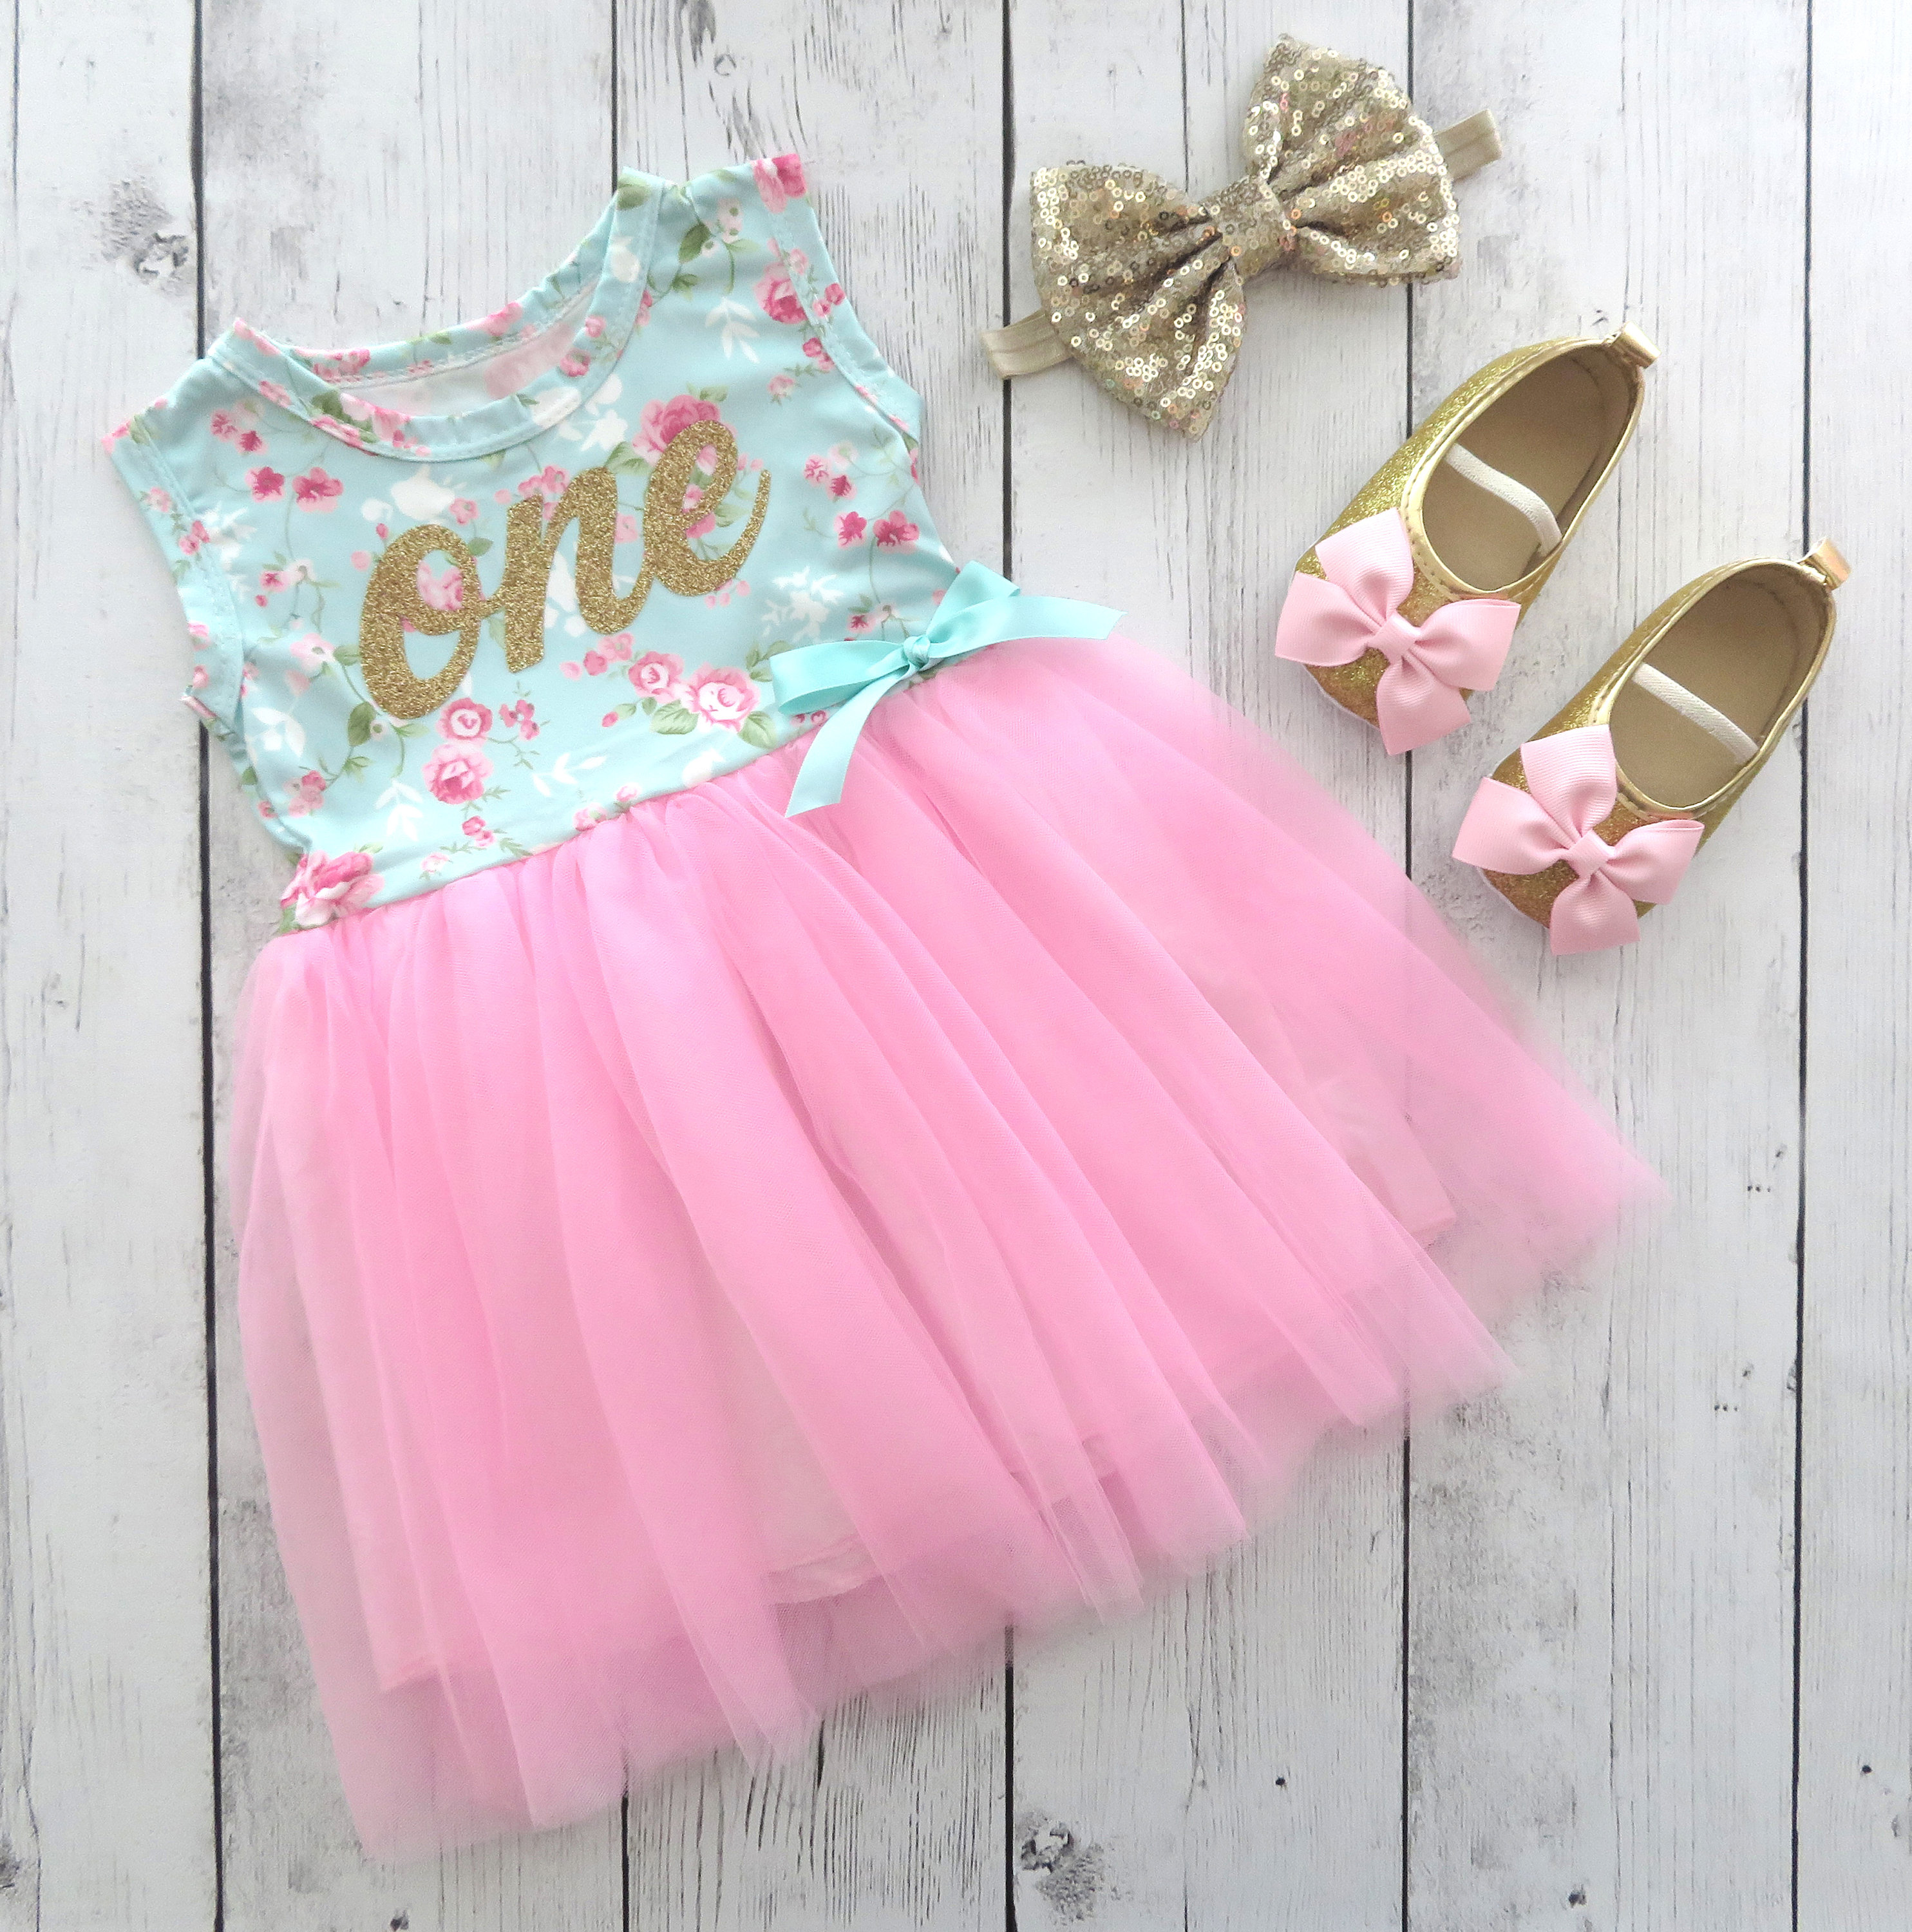 First Birthday Tutu Dress with Mint Floral top - pink tulle skirt, 1st bday tutu dress, pink gold shoes, birthday tutu, one year old